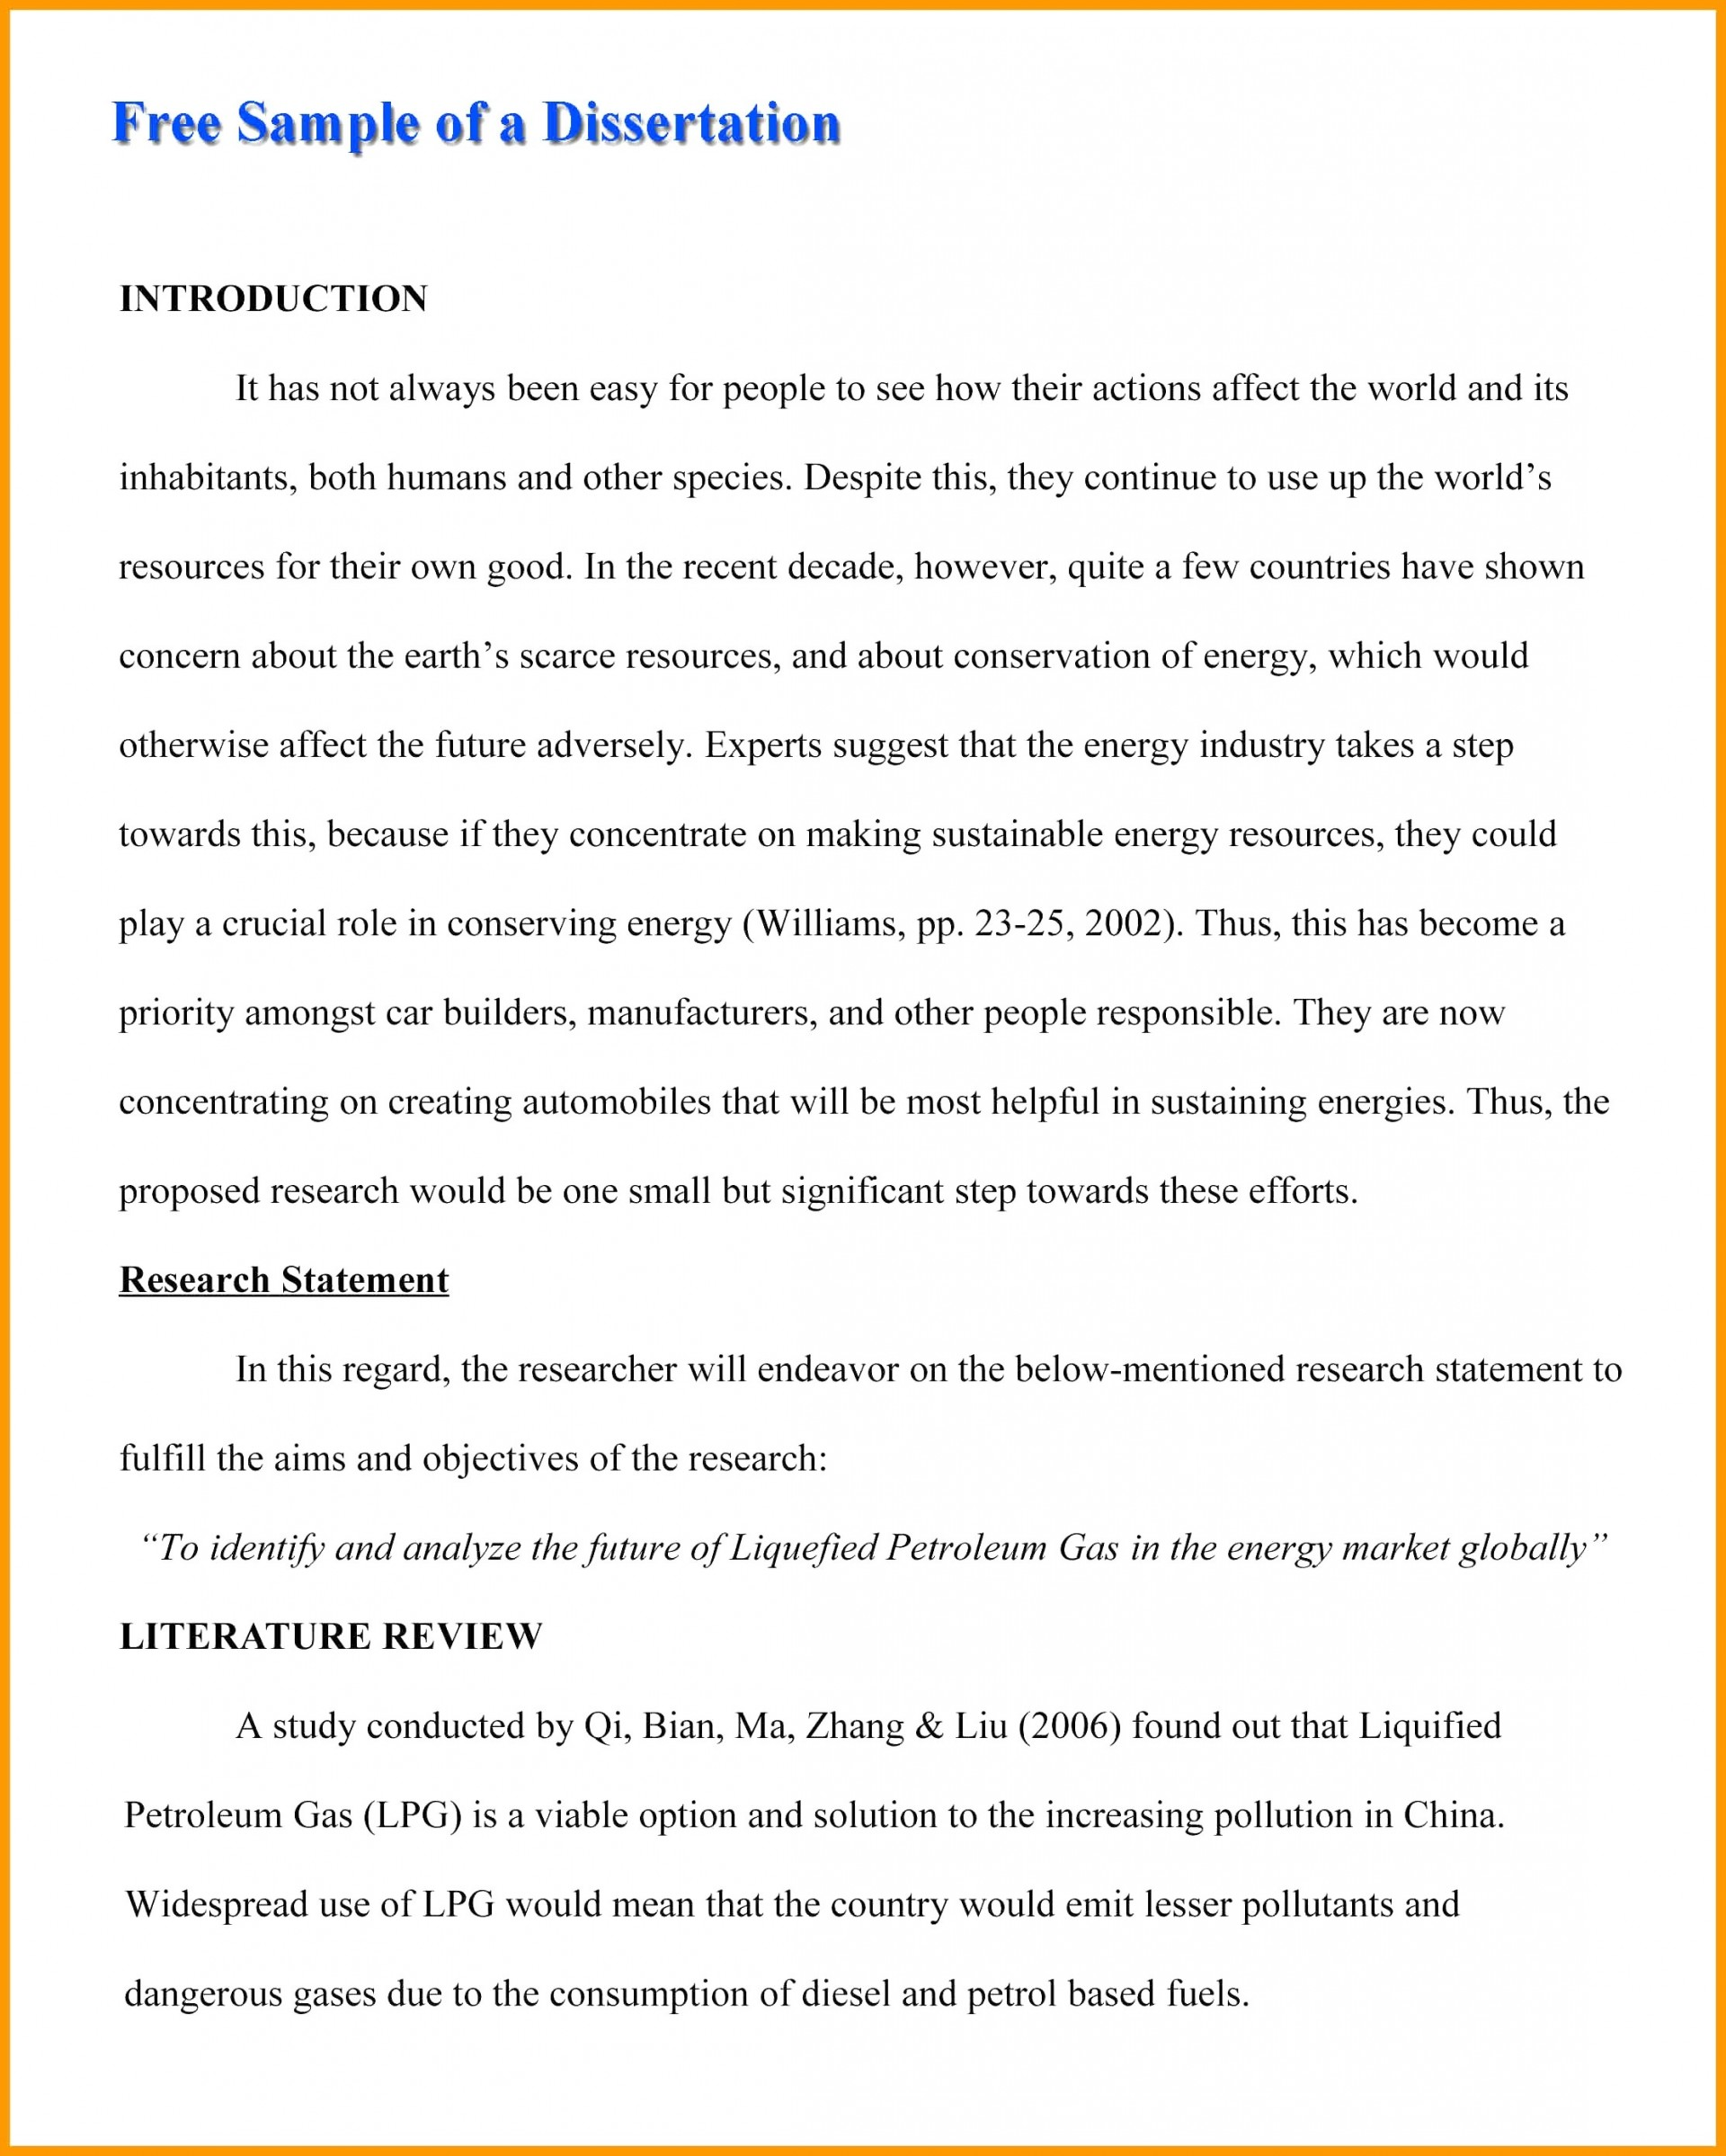 004 War On Drugs Research Paper Outline Filename Books Historical Pertaining To History Essay Impressive Unique Ideas Template Topics For High School Students 1920